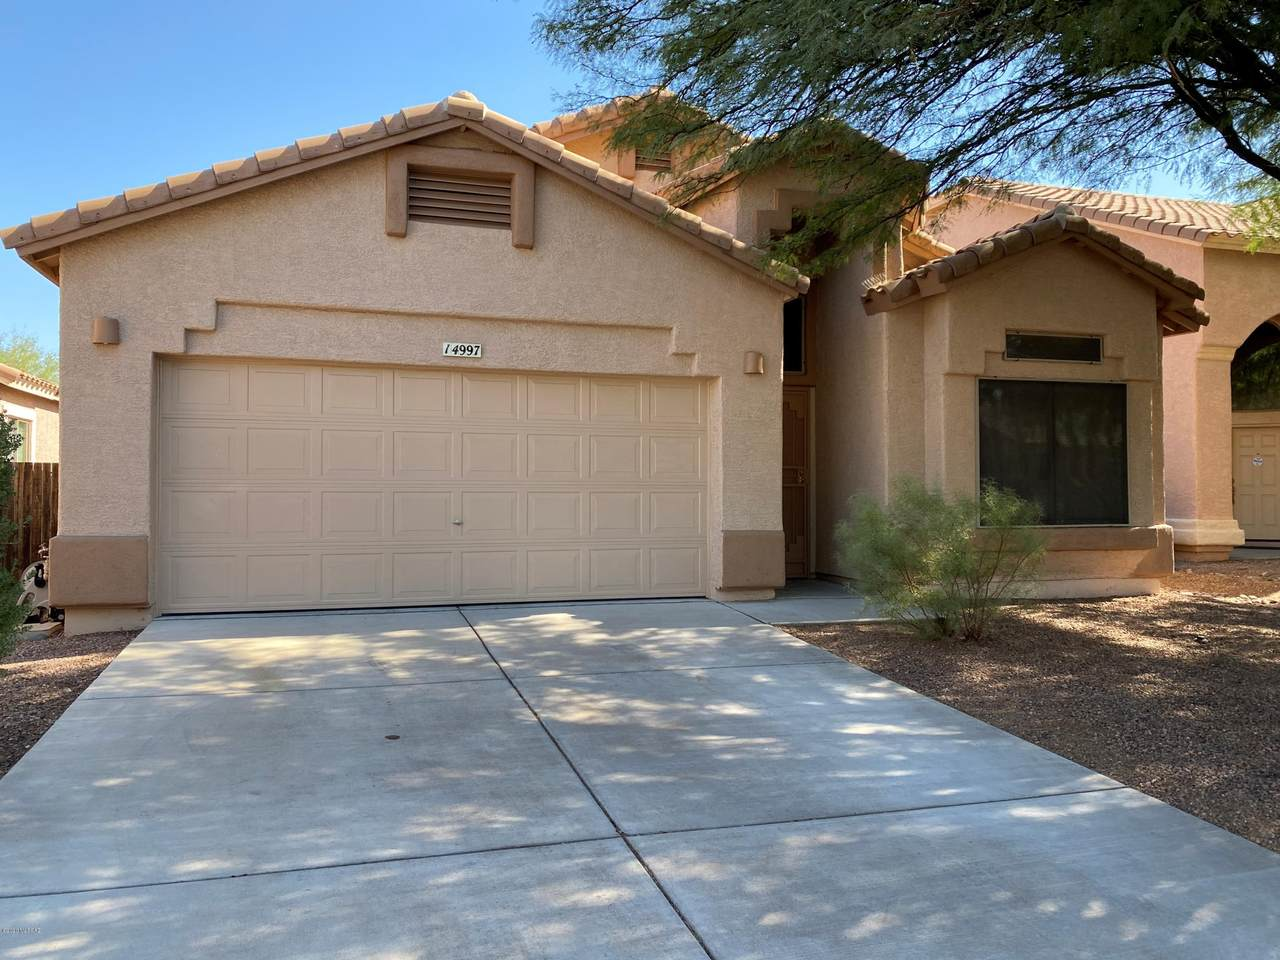 14997 Theodore Roosevelt Way - Photo 1